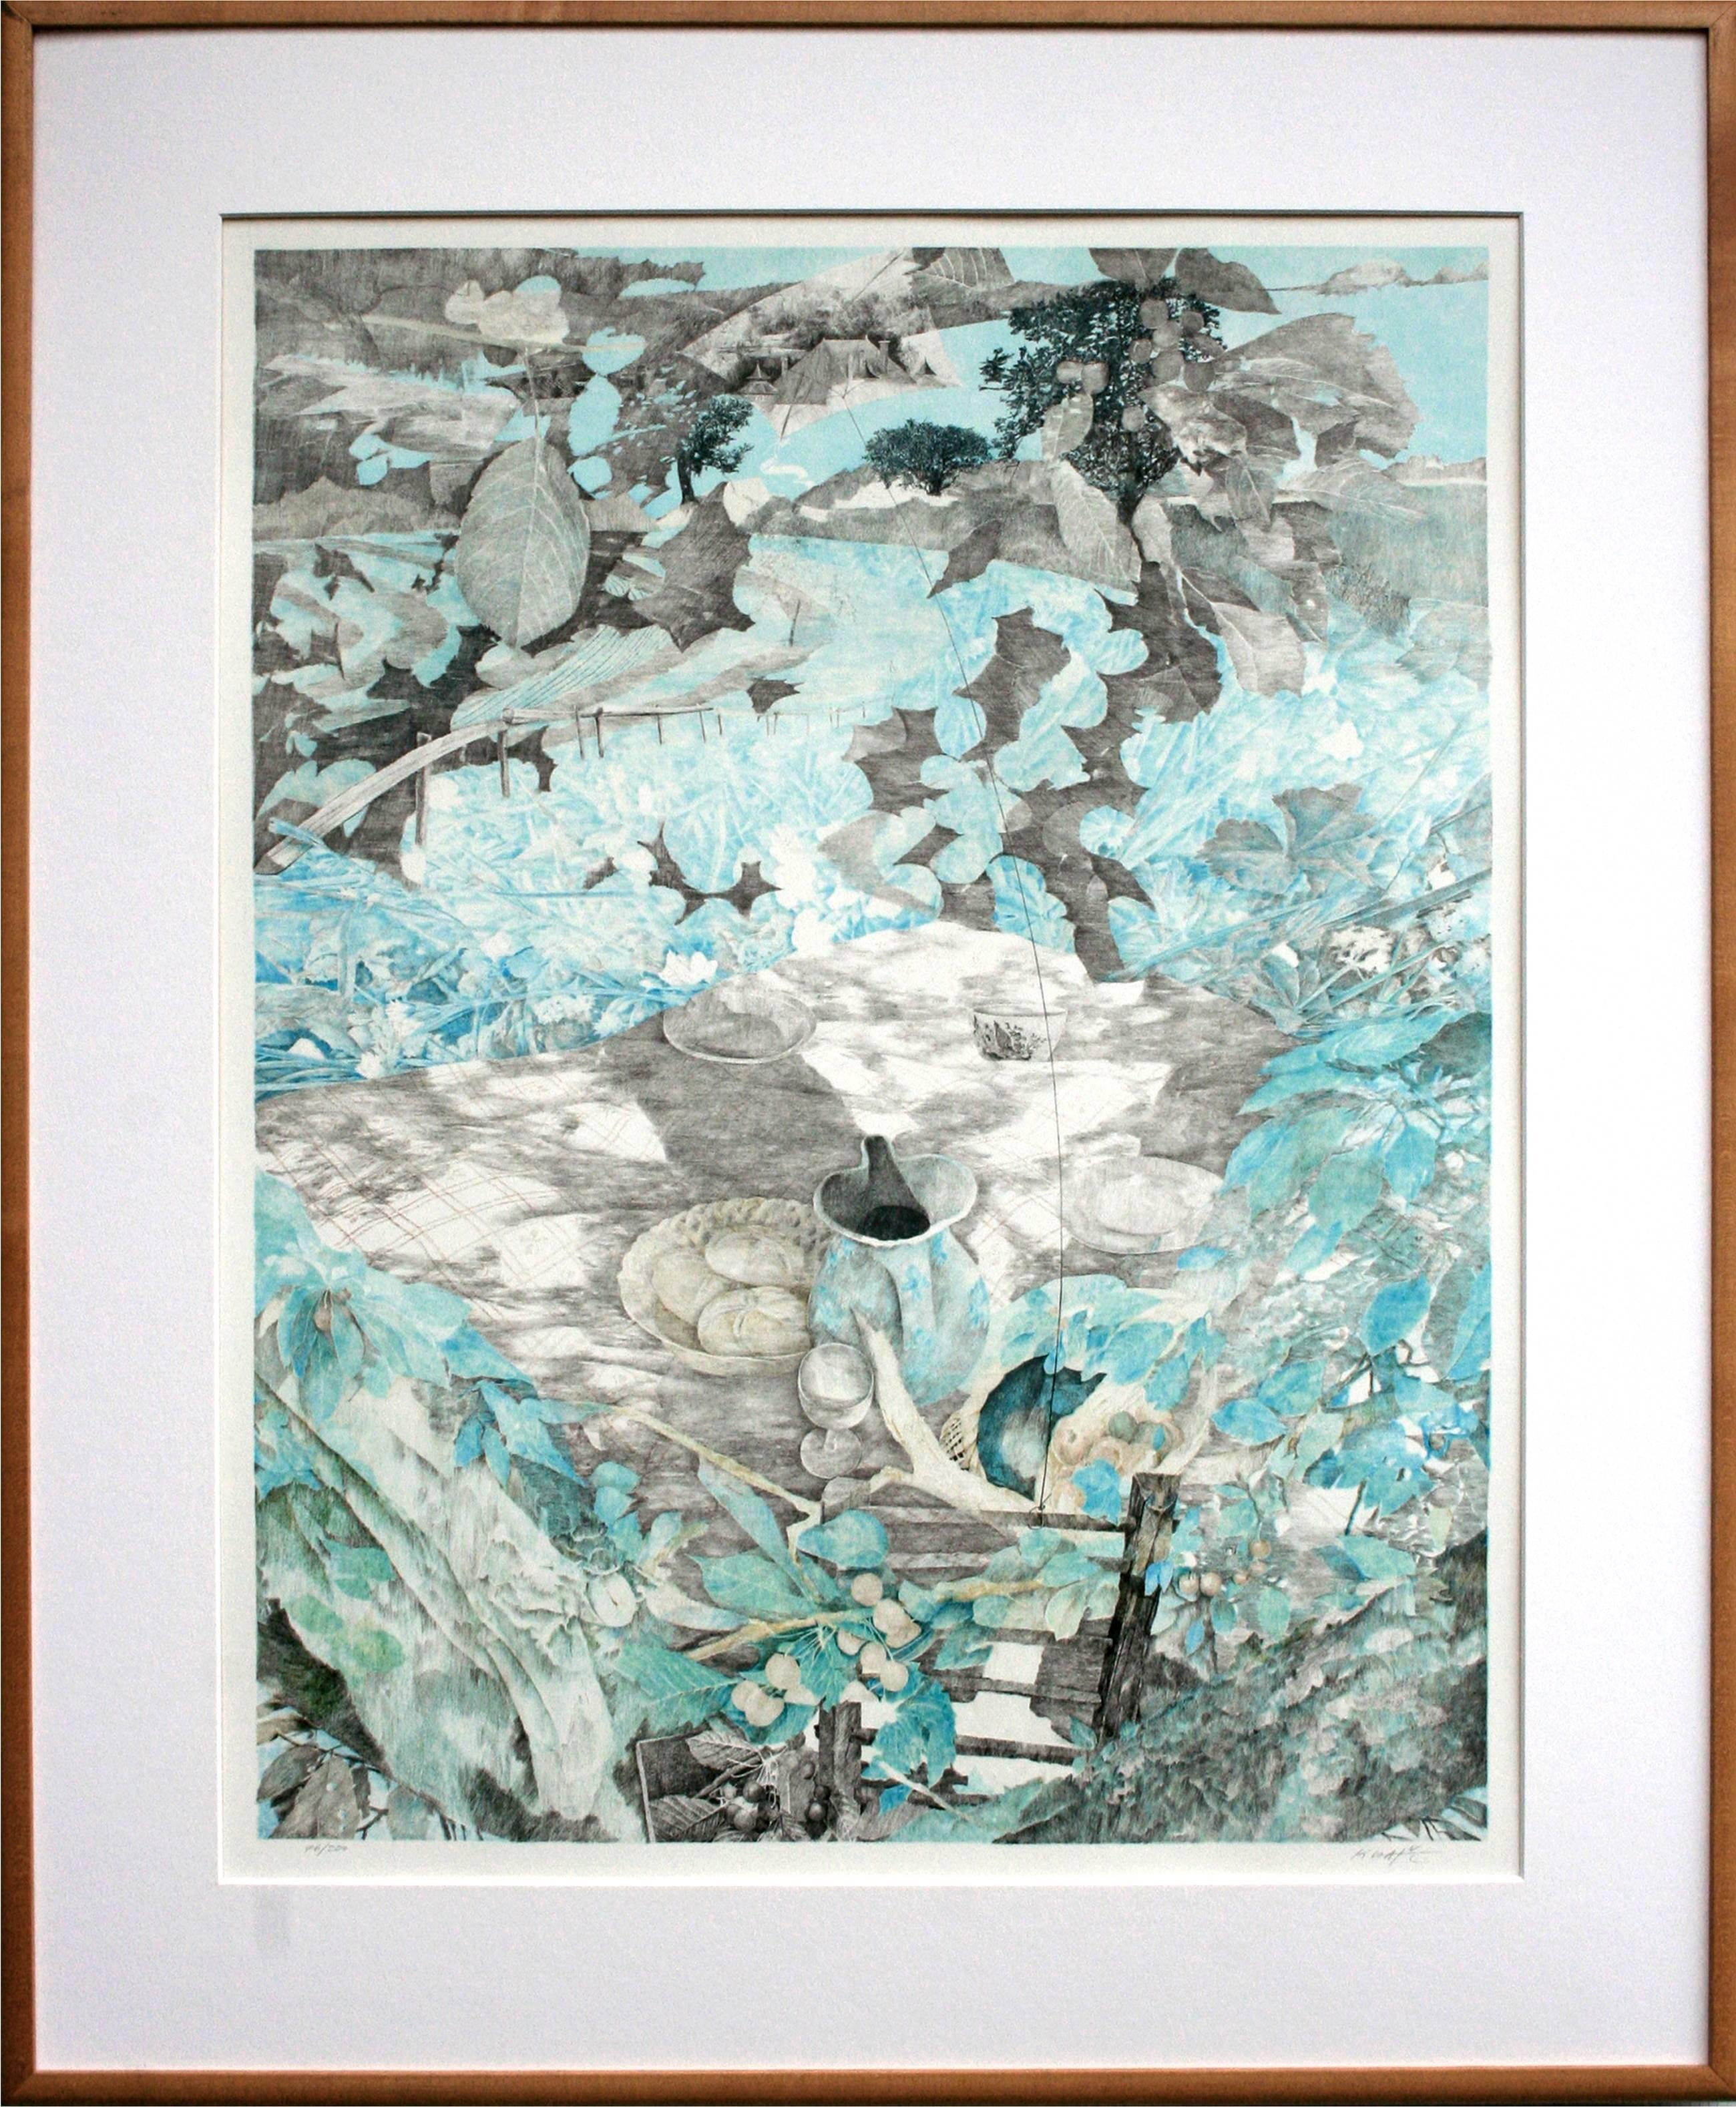 Picnic & Kite - Abstract Landscape Lithograph